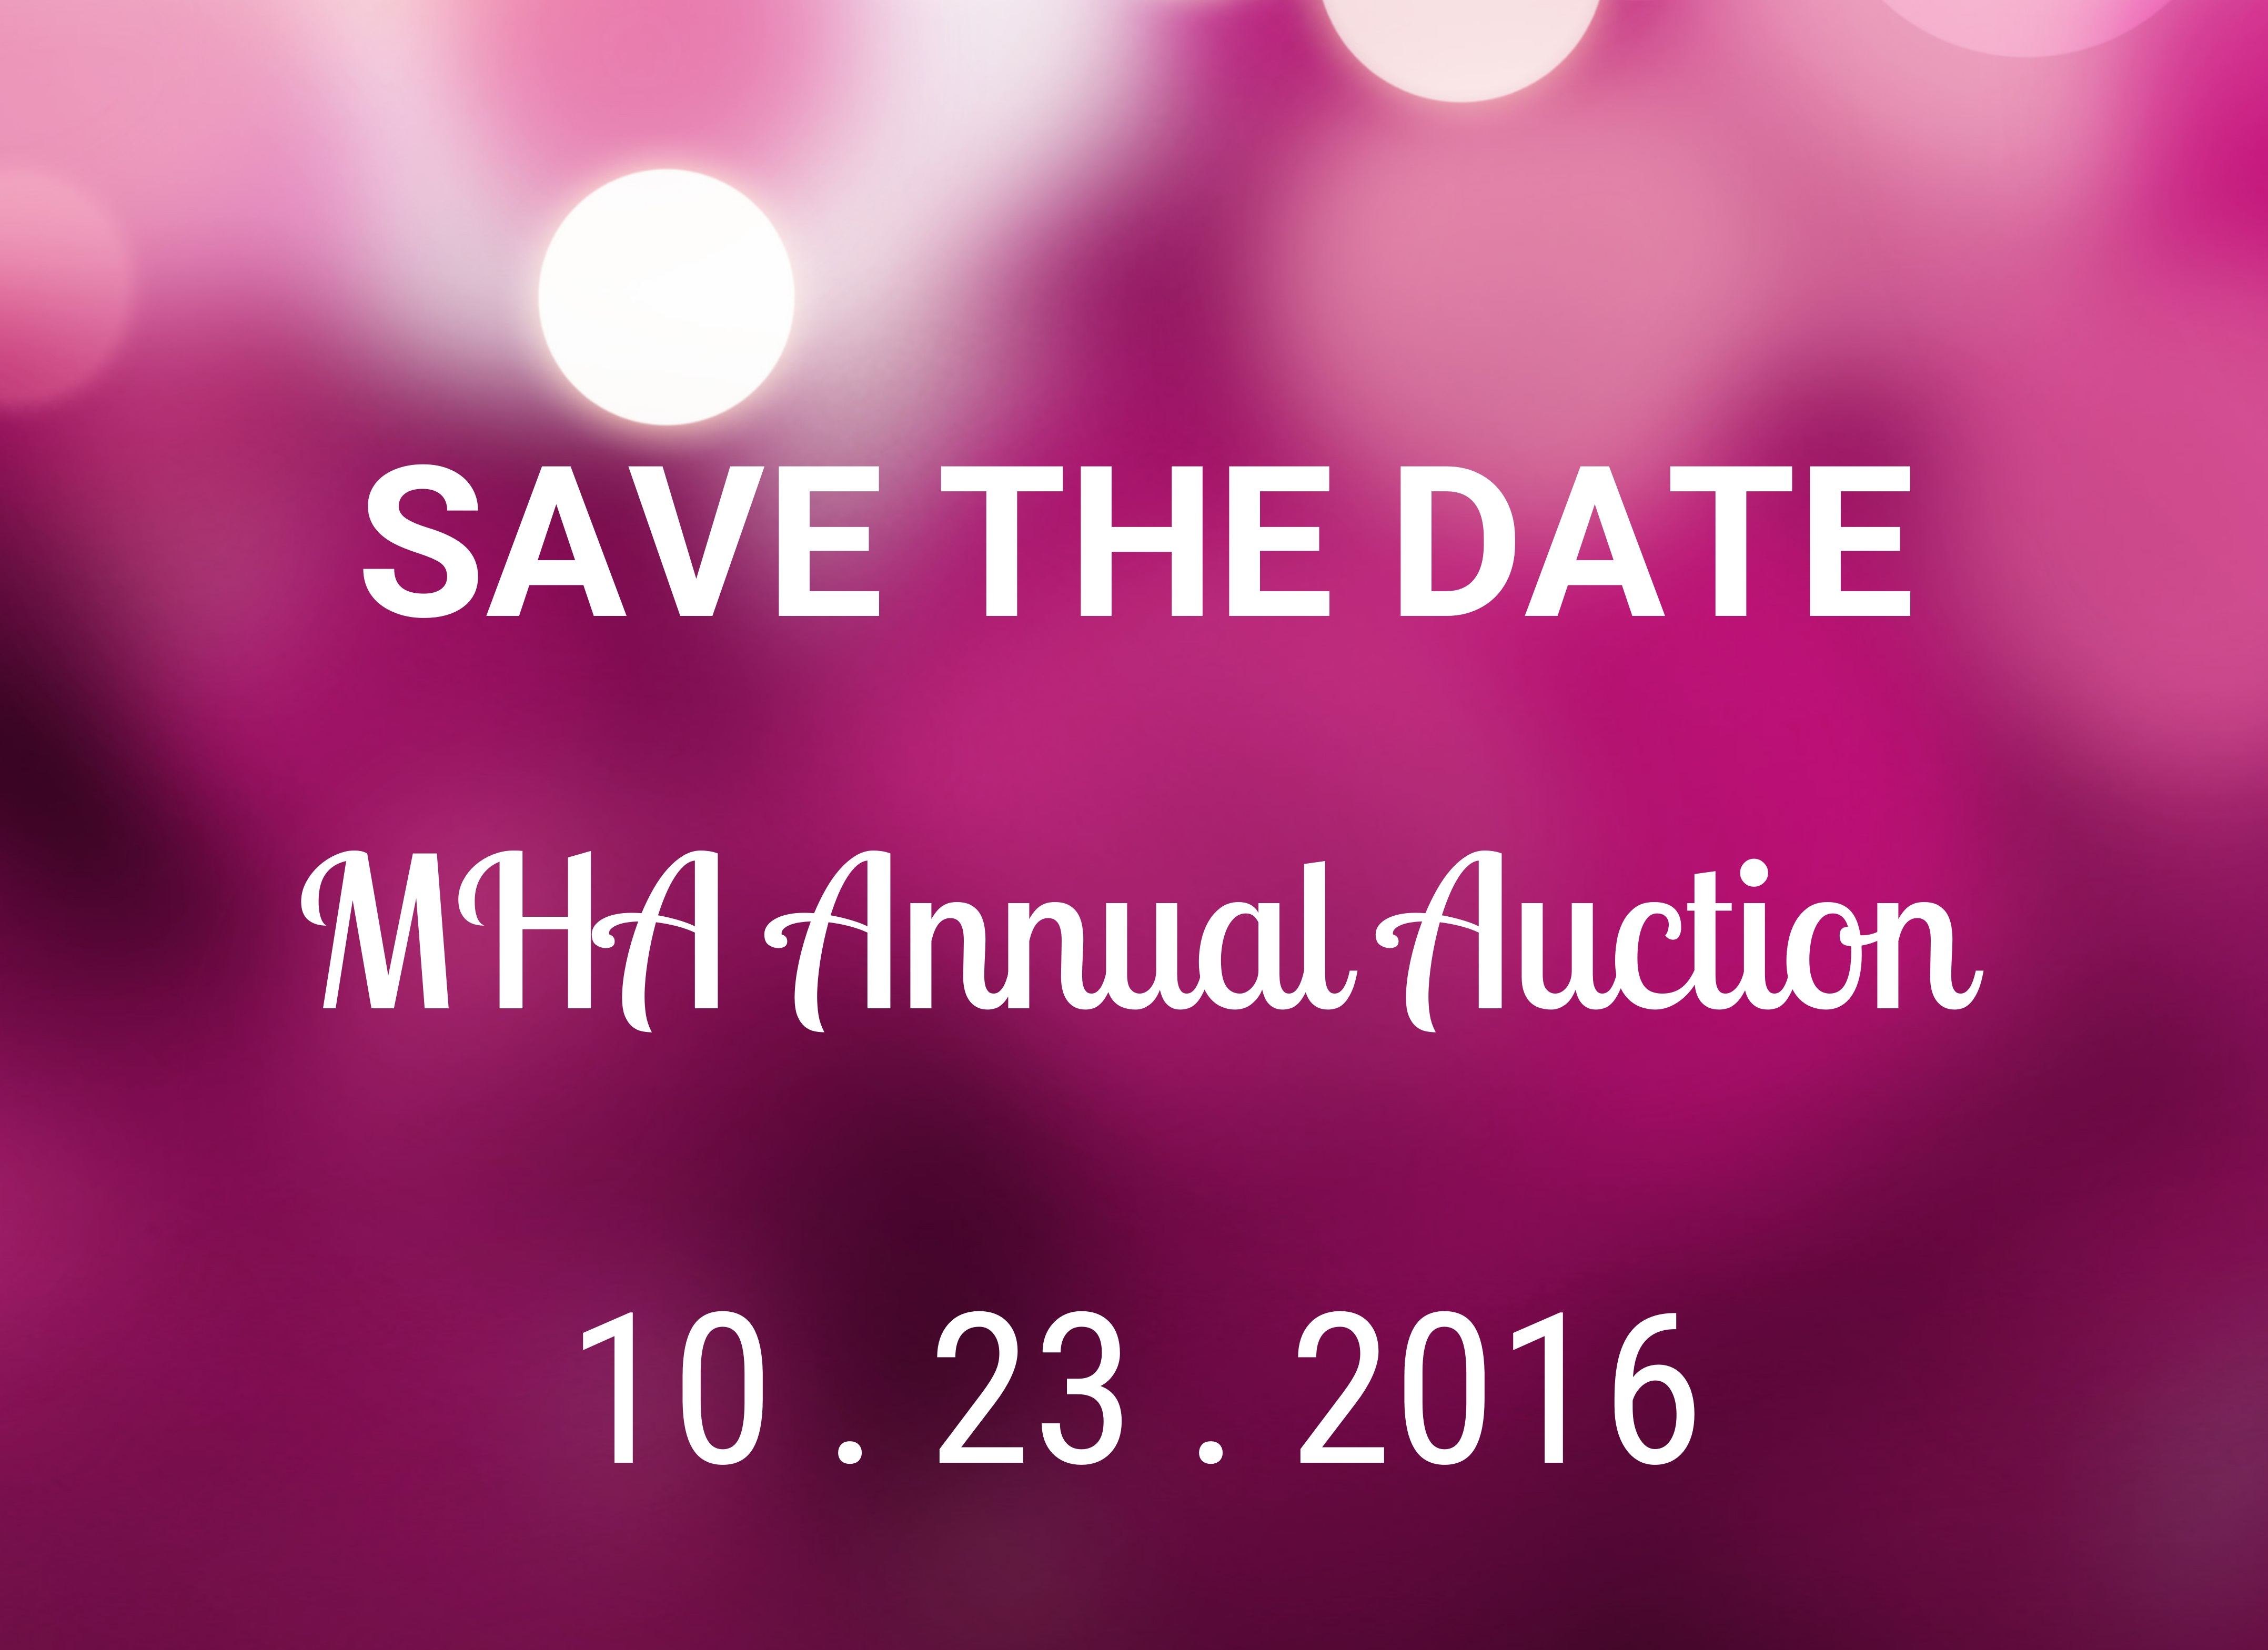 mha-annual-auction-save-the-date-2016-front-page